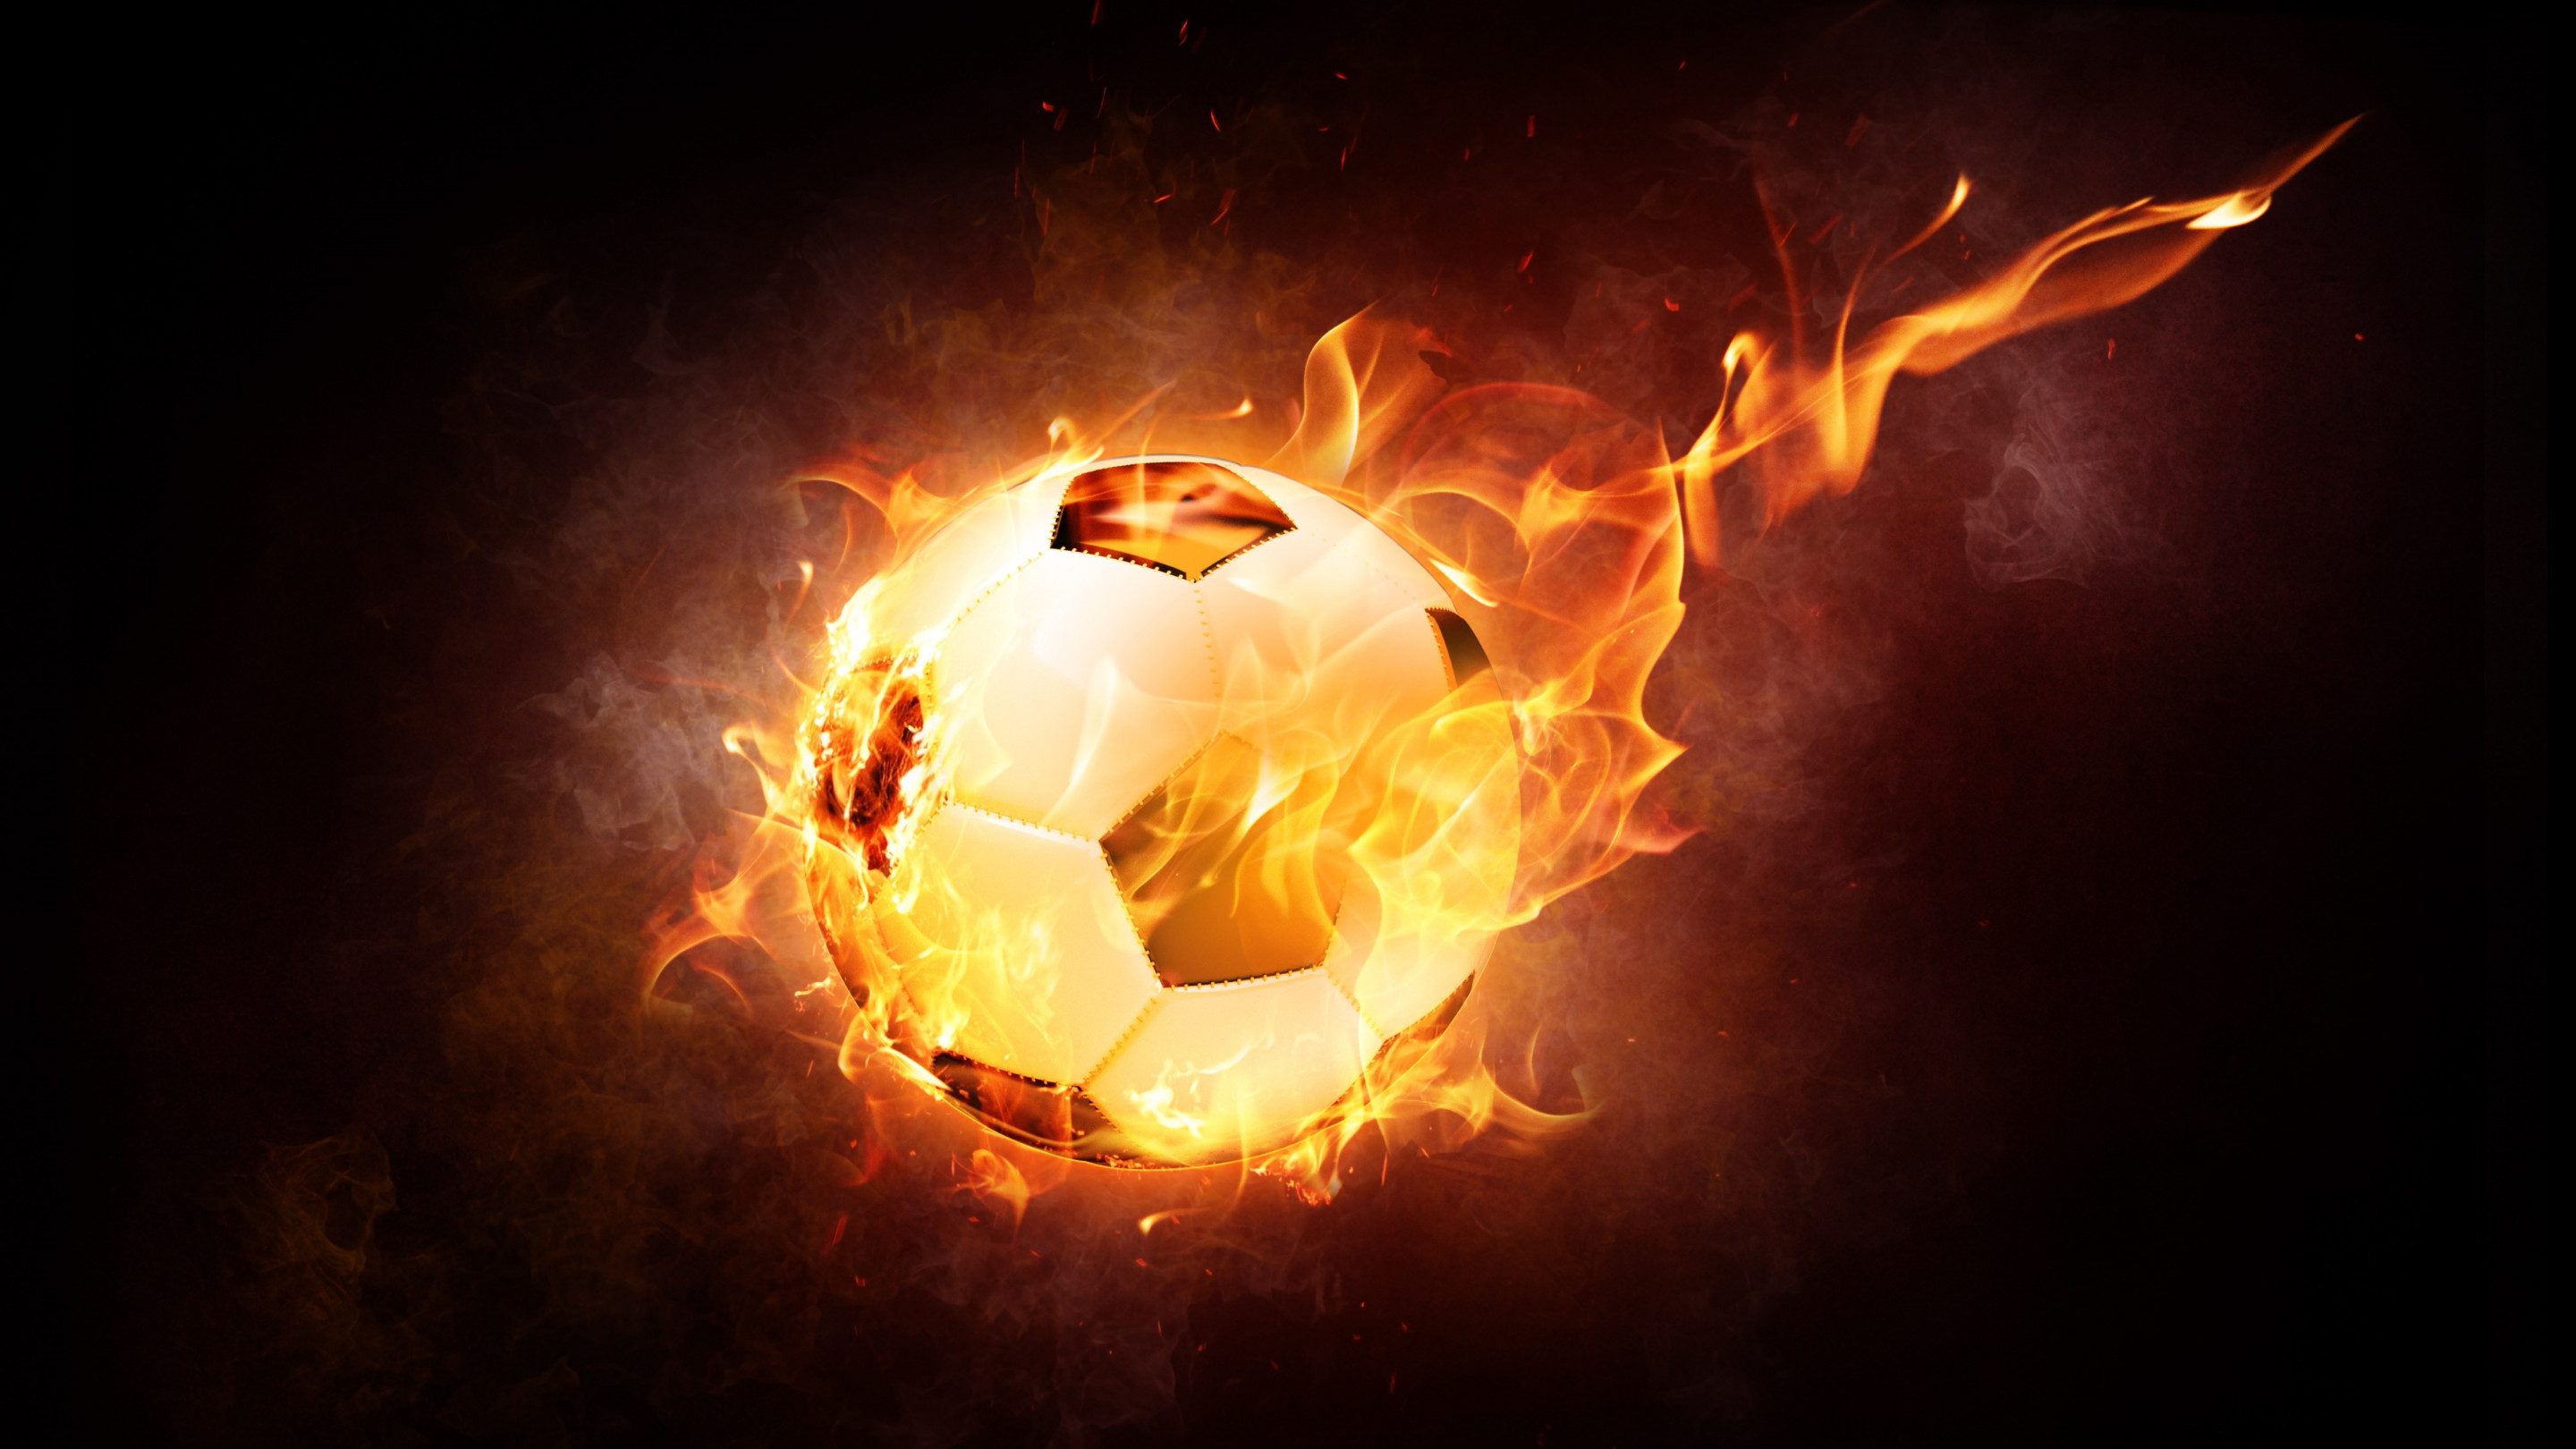 The football ball is on fire wallpaper 2880x1620